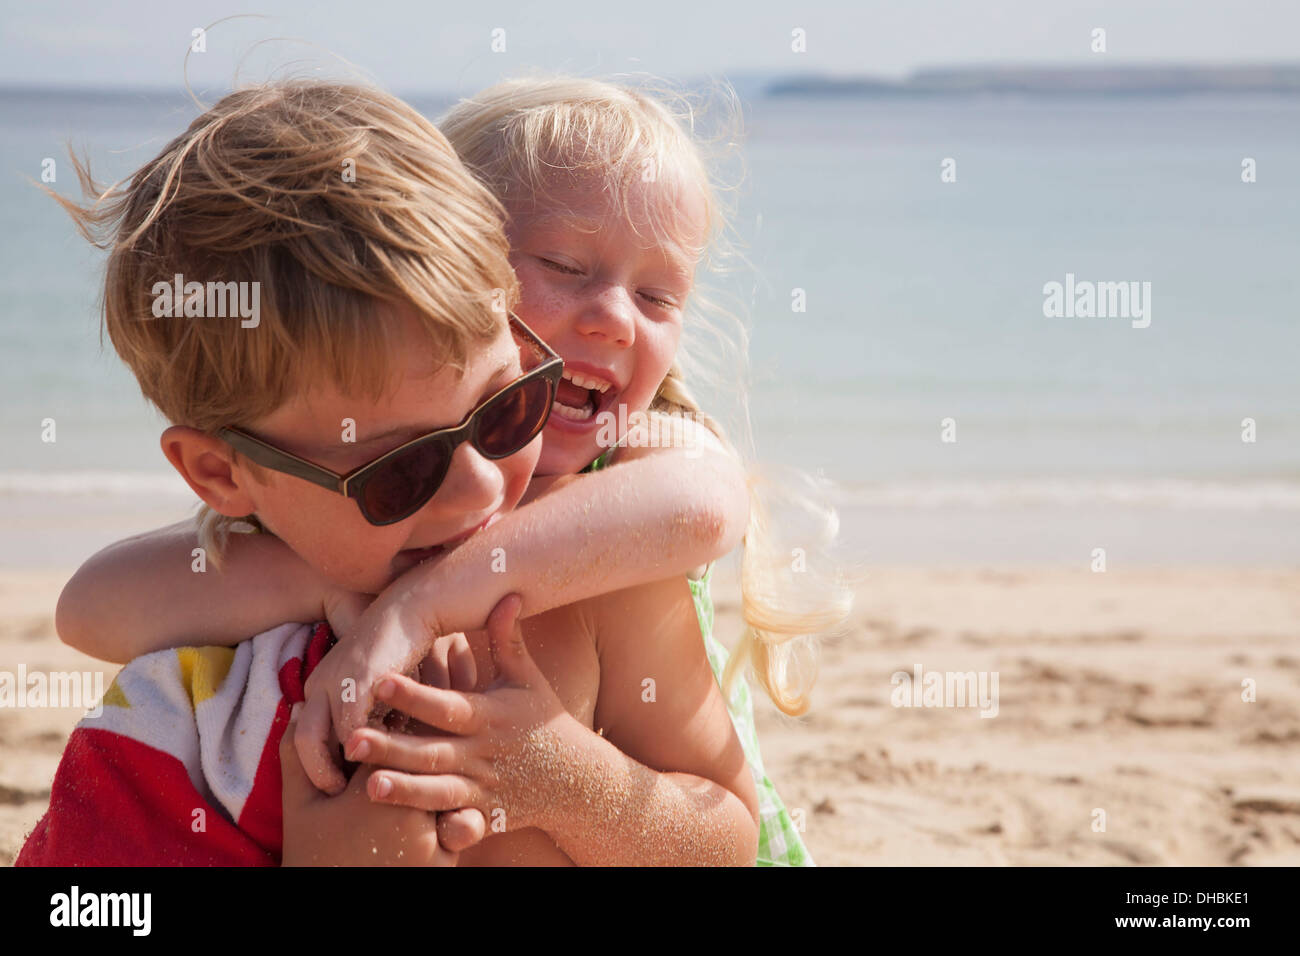 A brother and sister play fighting on the beach. A boy in sunglasses and a younger girl with her arms around his neck. - Stock Image